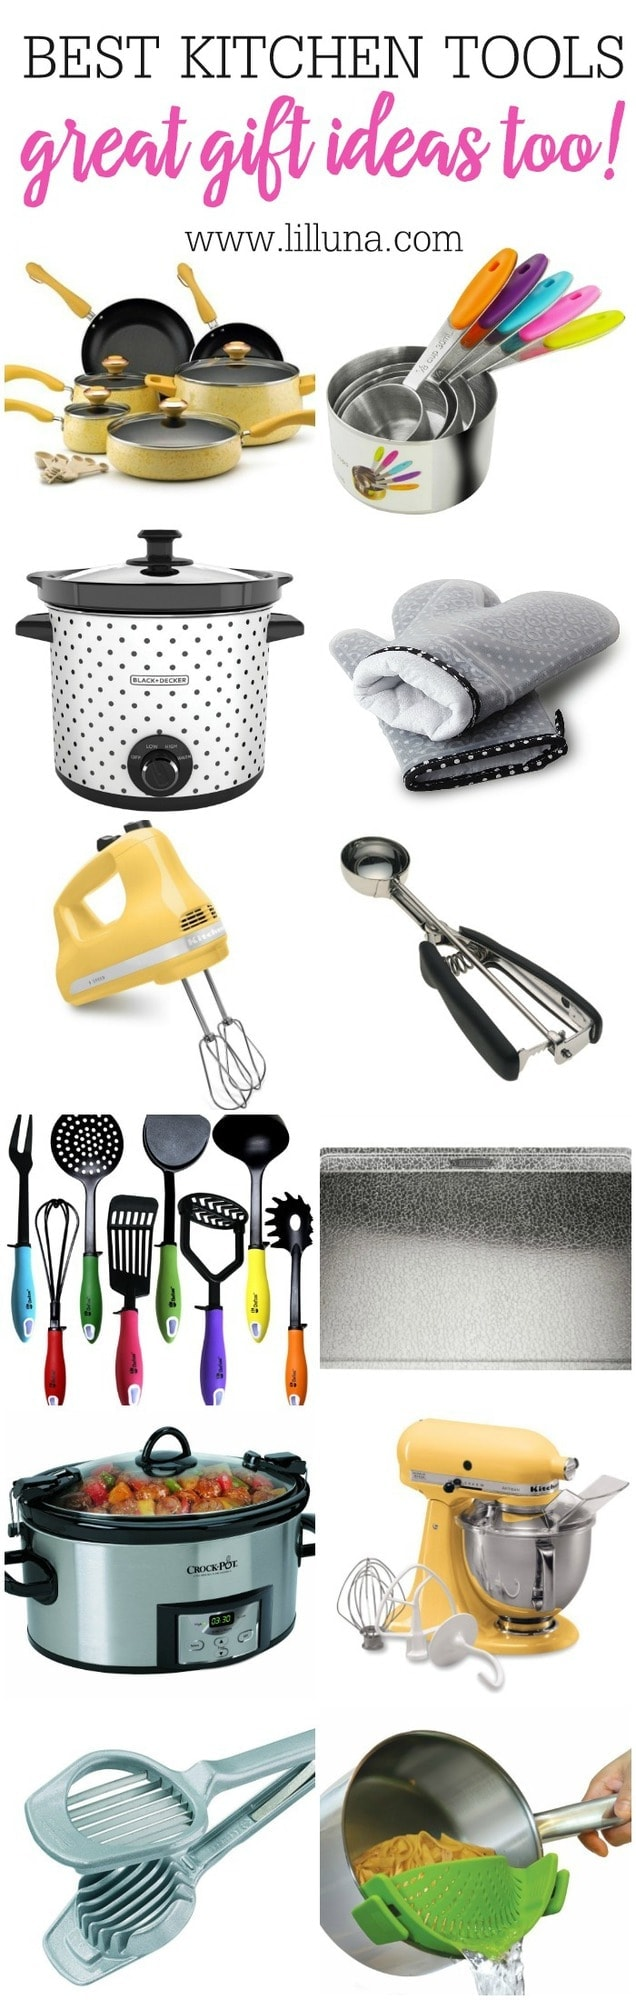 Kitchen Christmas Gift Best Kitchen Tools Great Christmas Gift Ideas Lil Luna